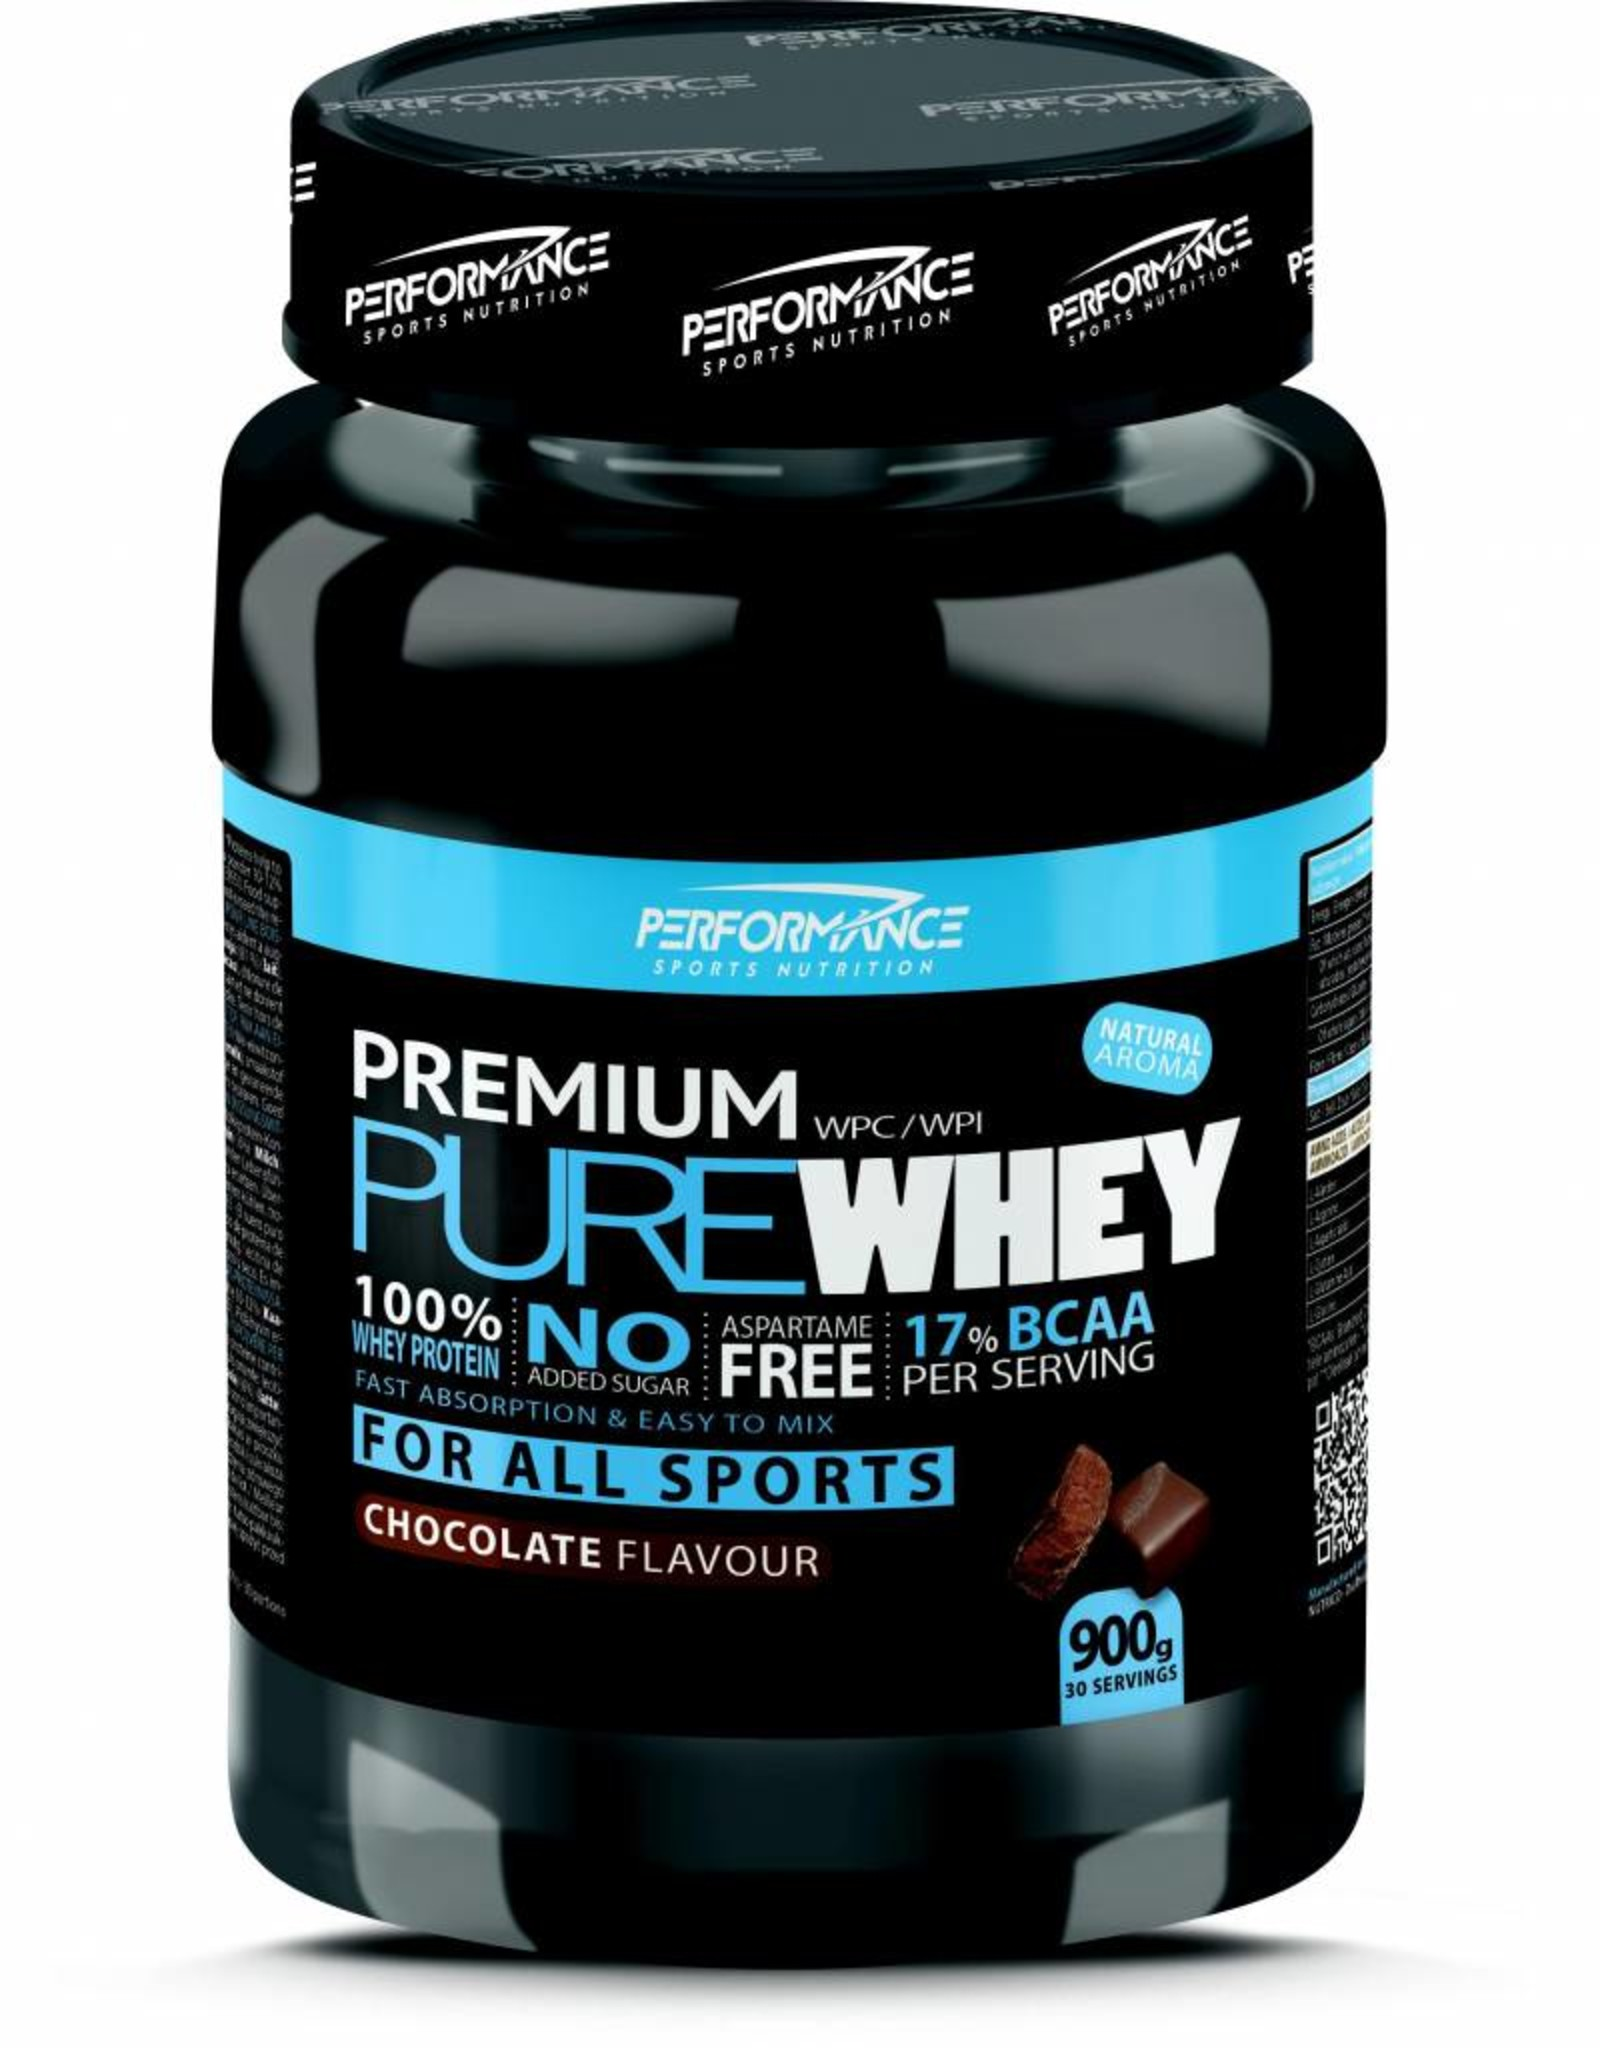 Performance Premium pure whey chocolade